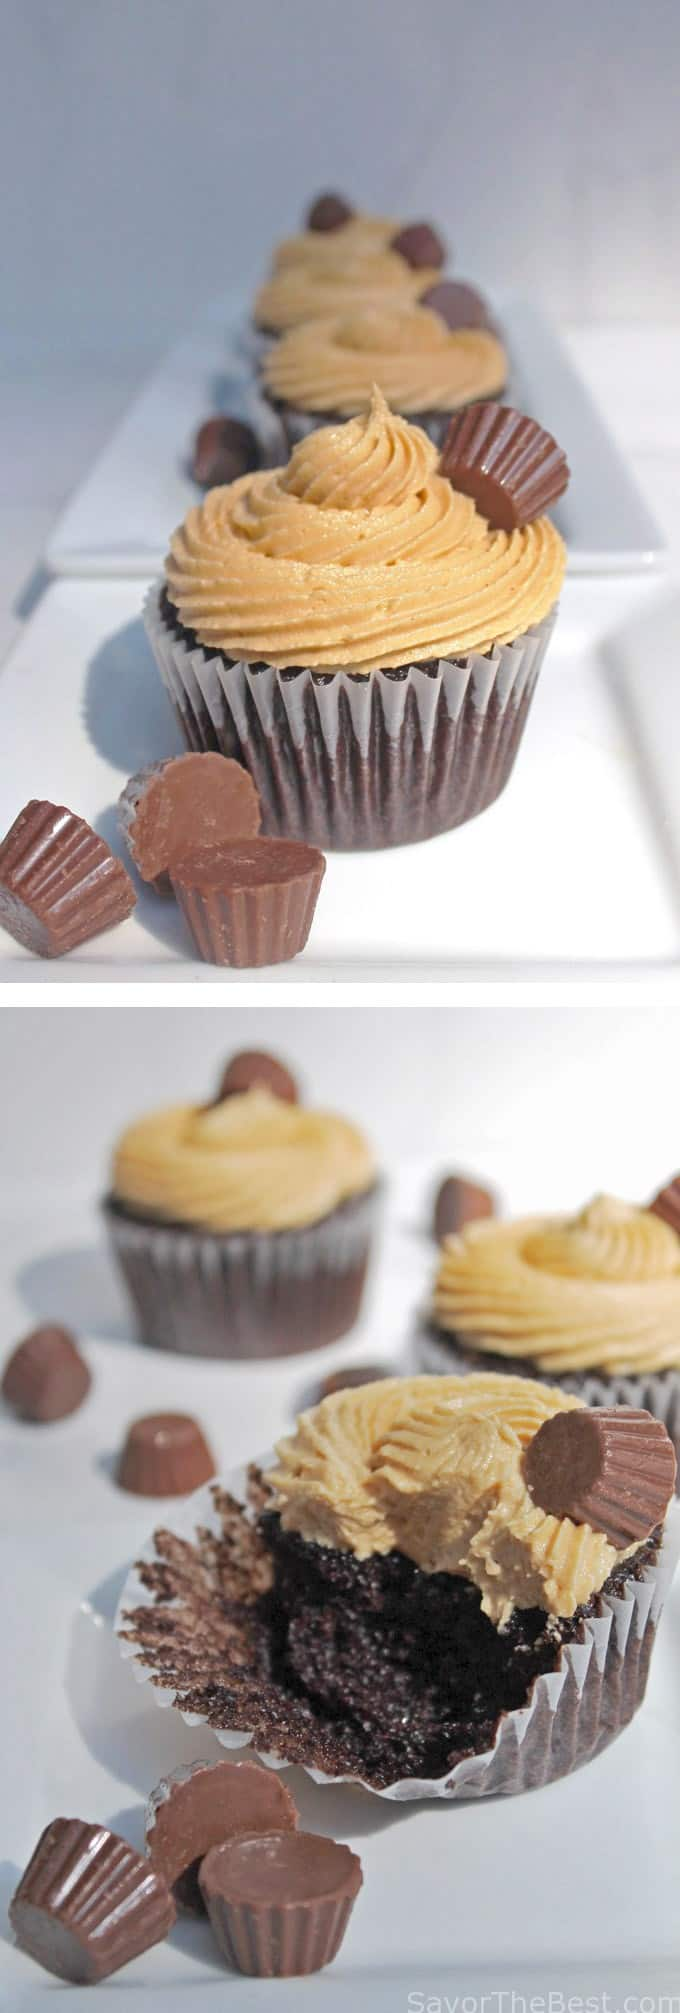 Reese's peanut butter and chocolate cupcakes